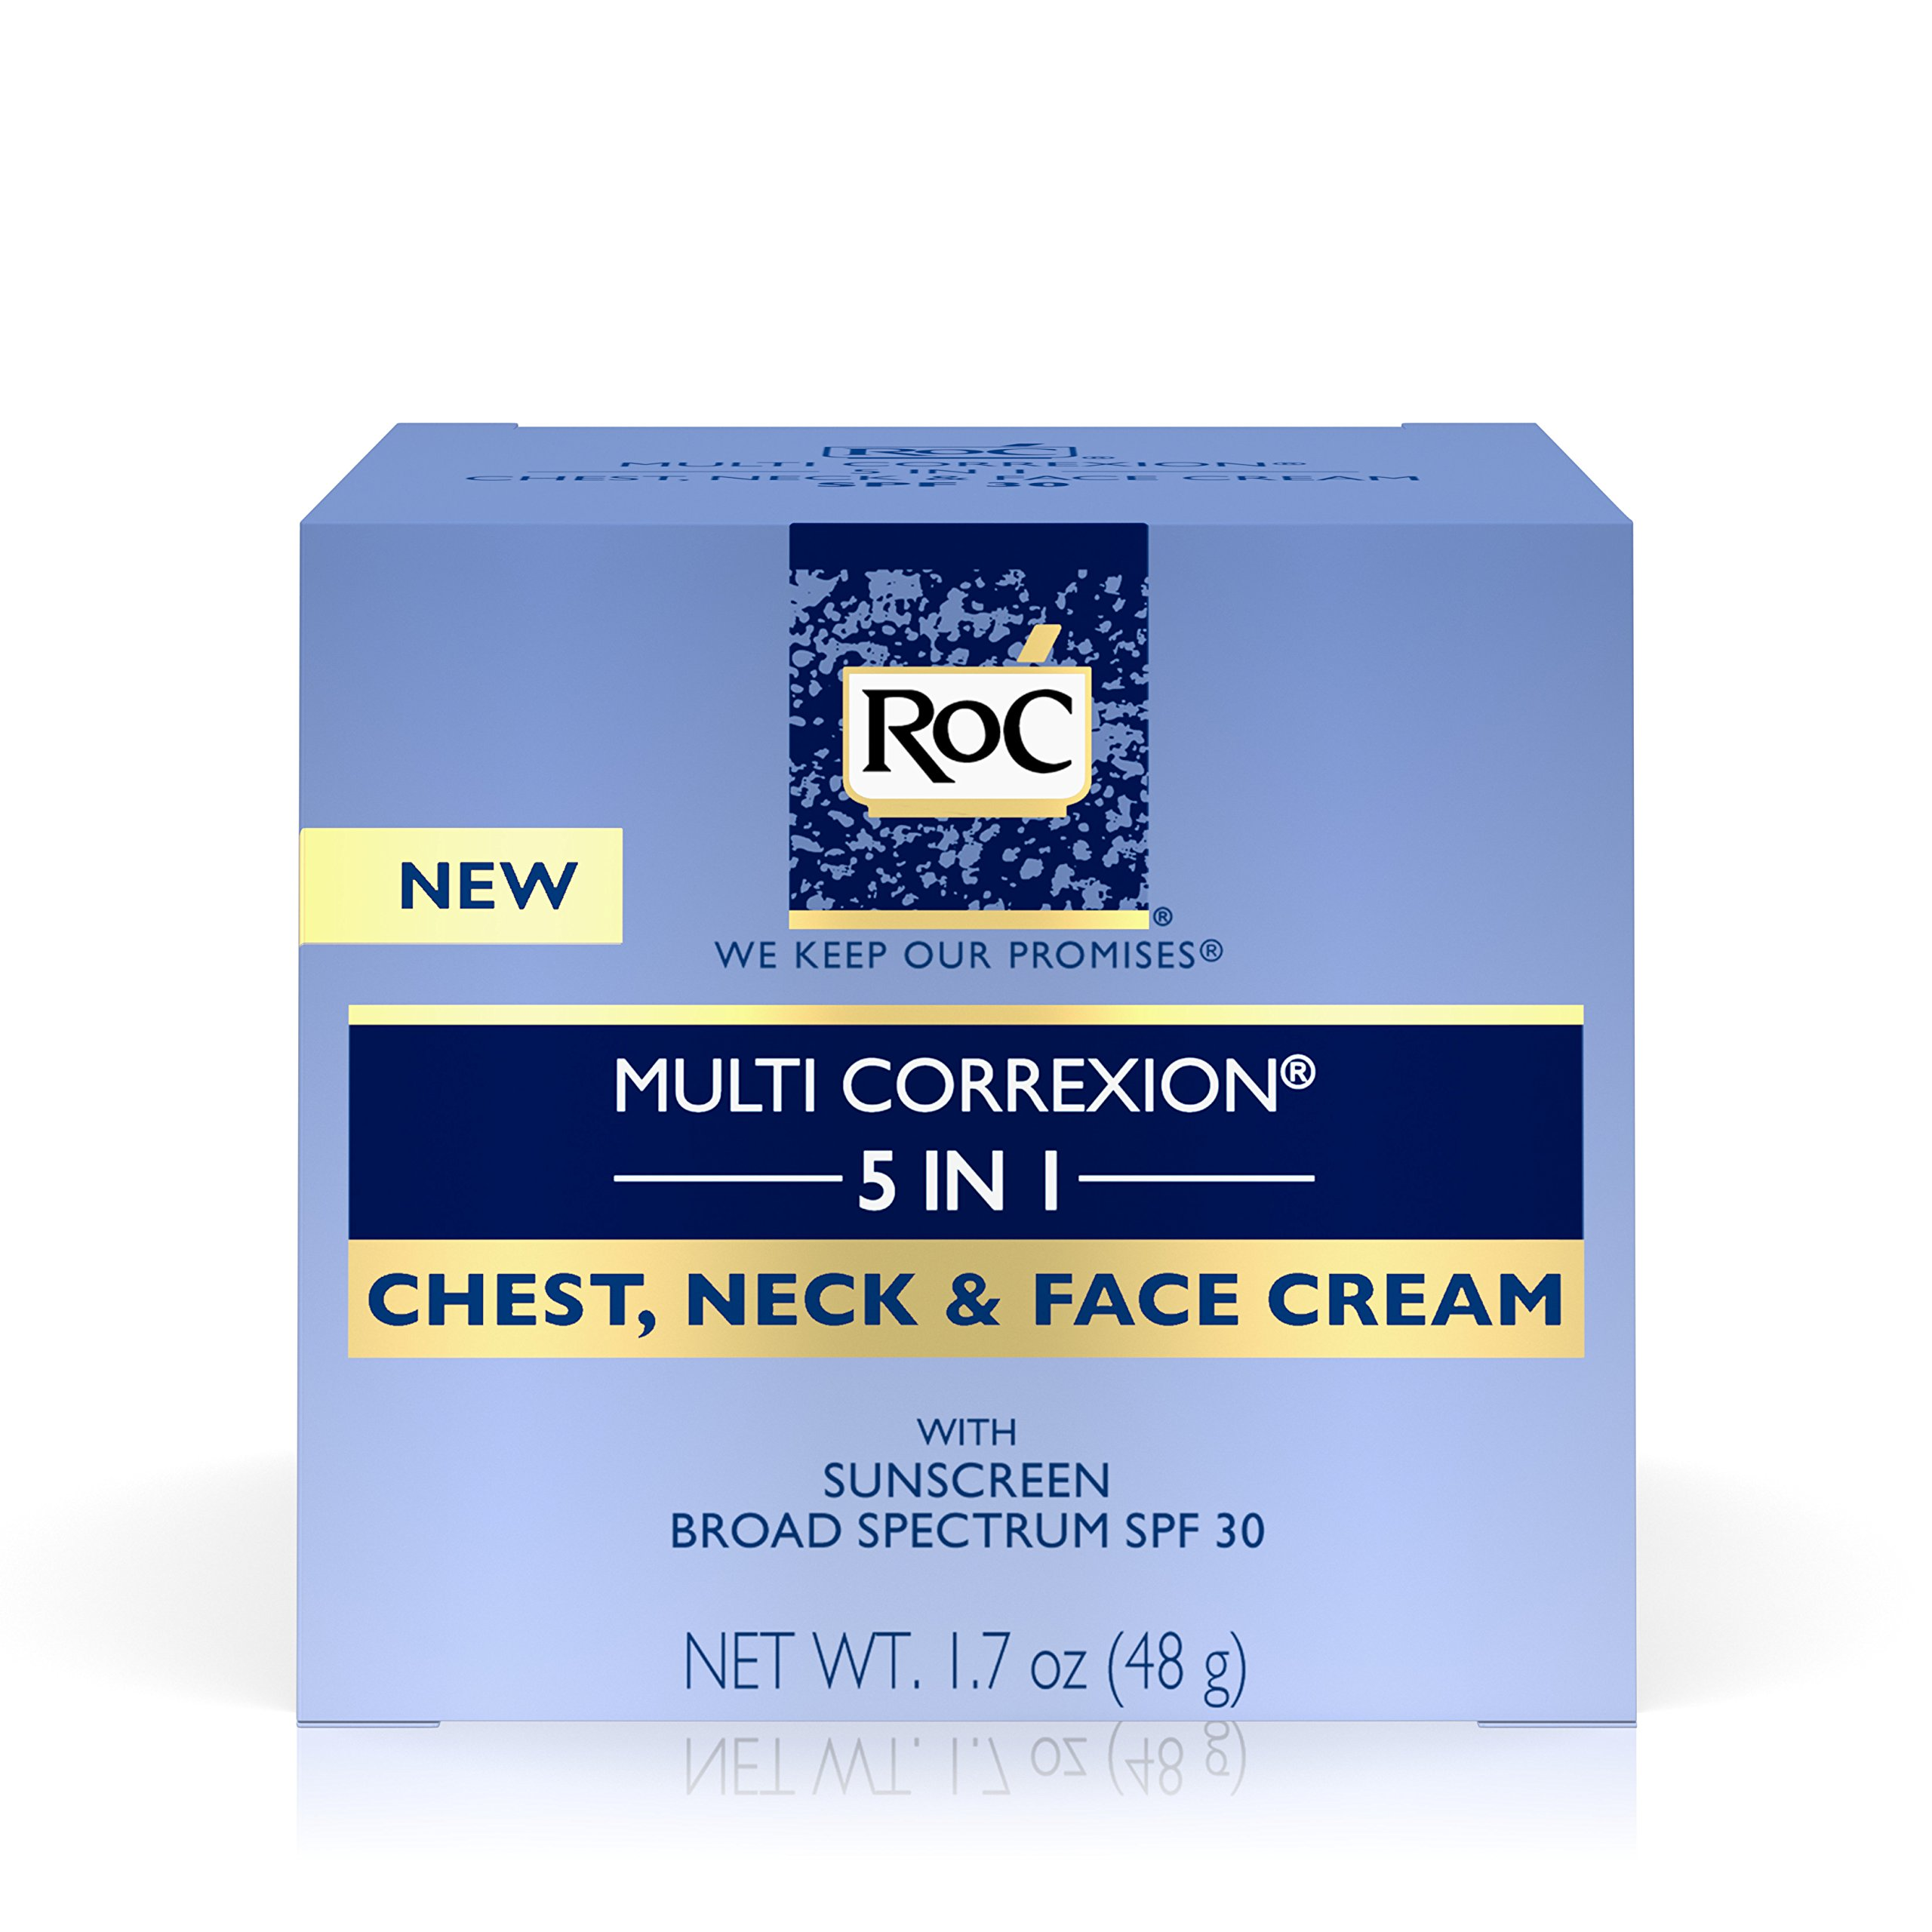 RoC Multi Correxion 5 in 1 Anti-Aging Chest, Neck and Face Cream with SPF 30, Moisturizing Cream Made with Vitamin E, 1.7 oz by RoC (Image #1)